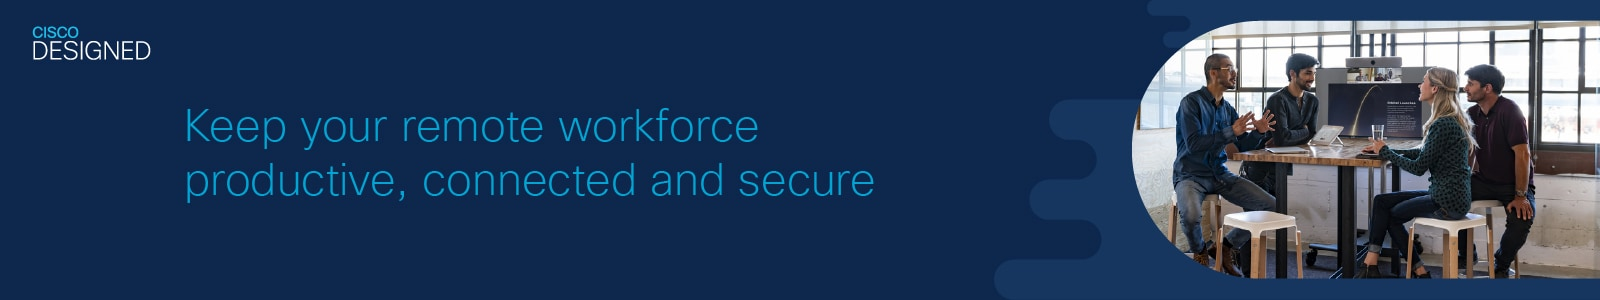 Keep your remote workforce productive, connected and secure